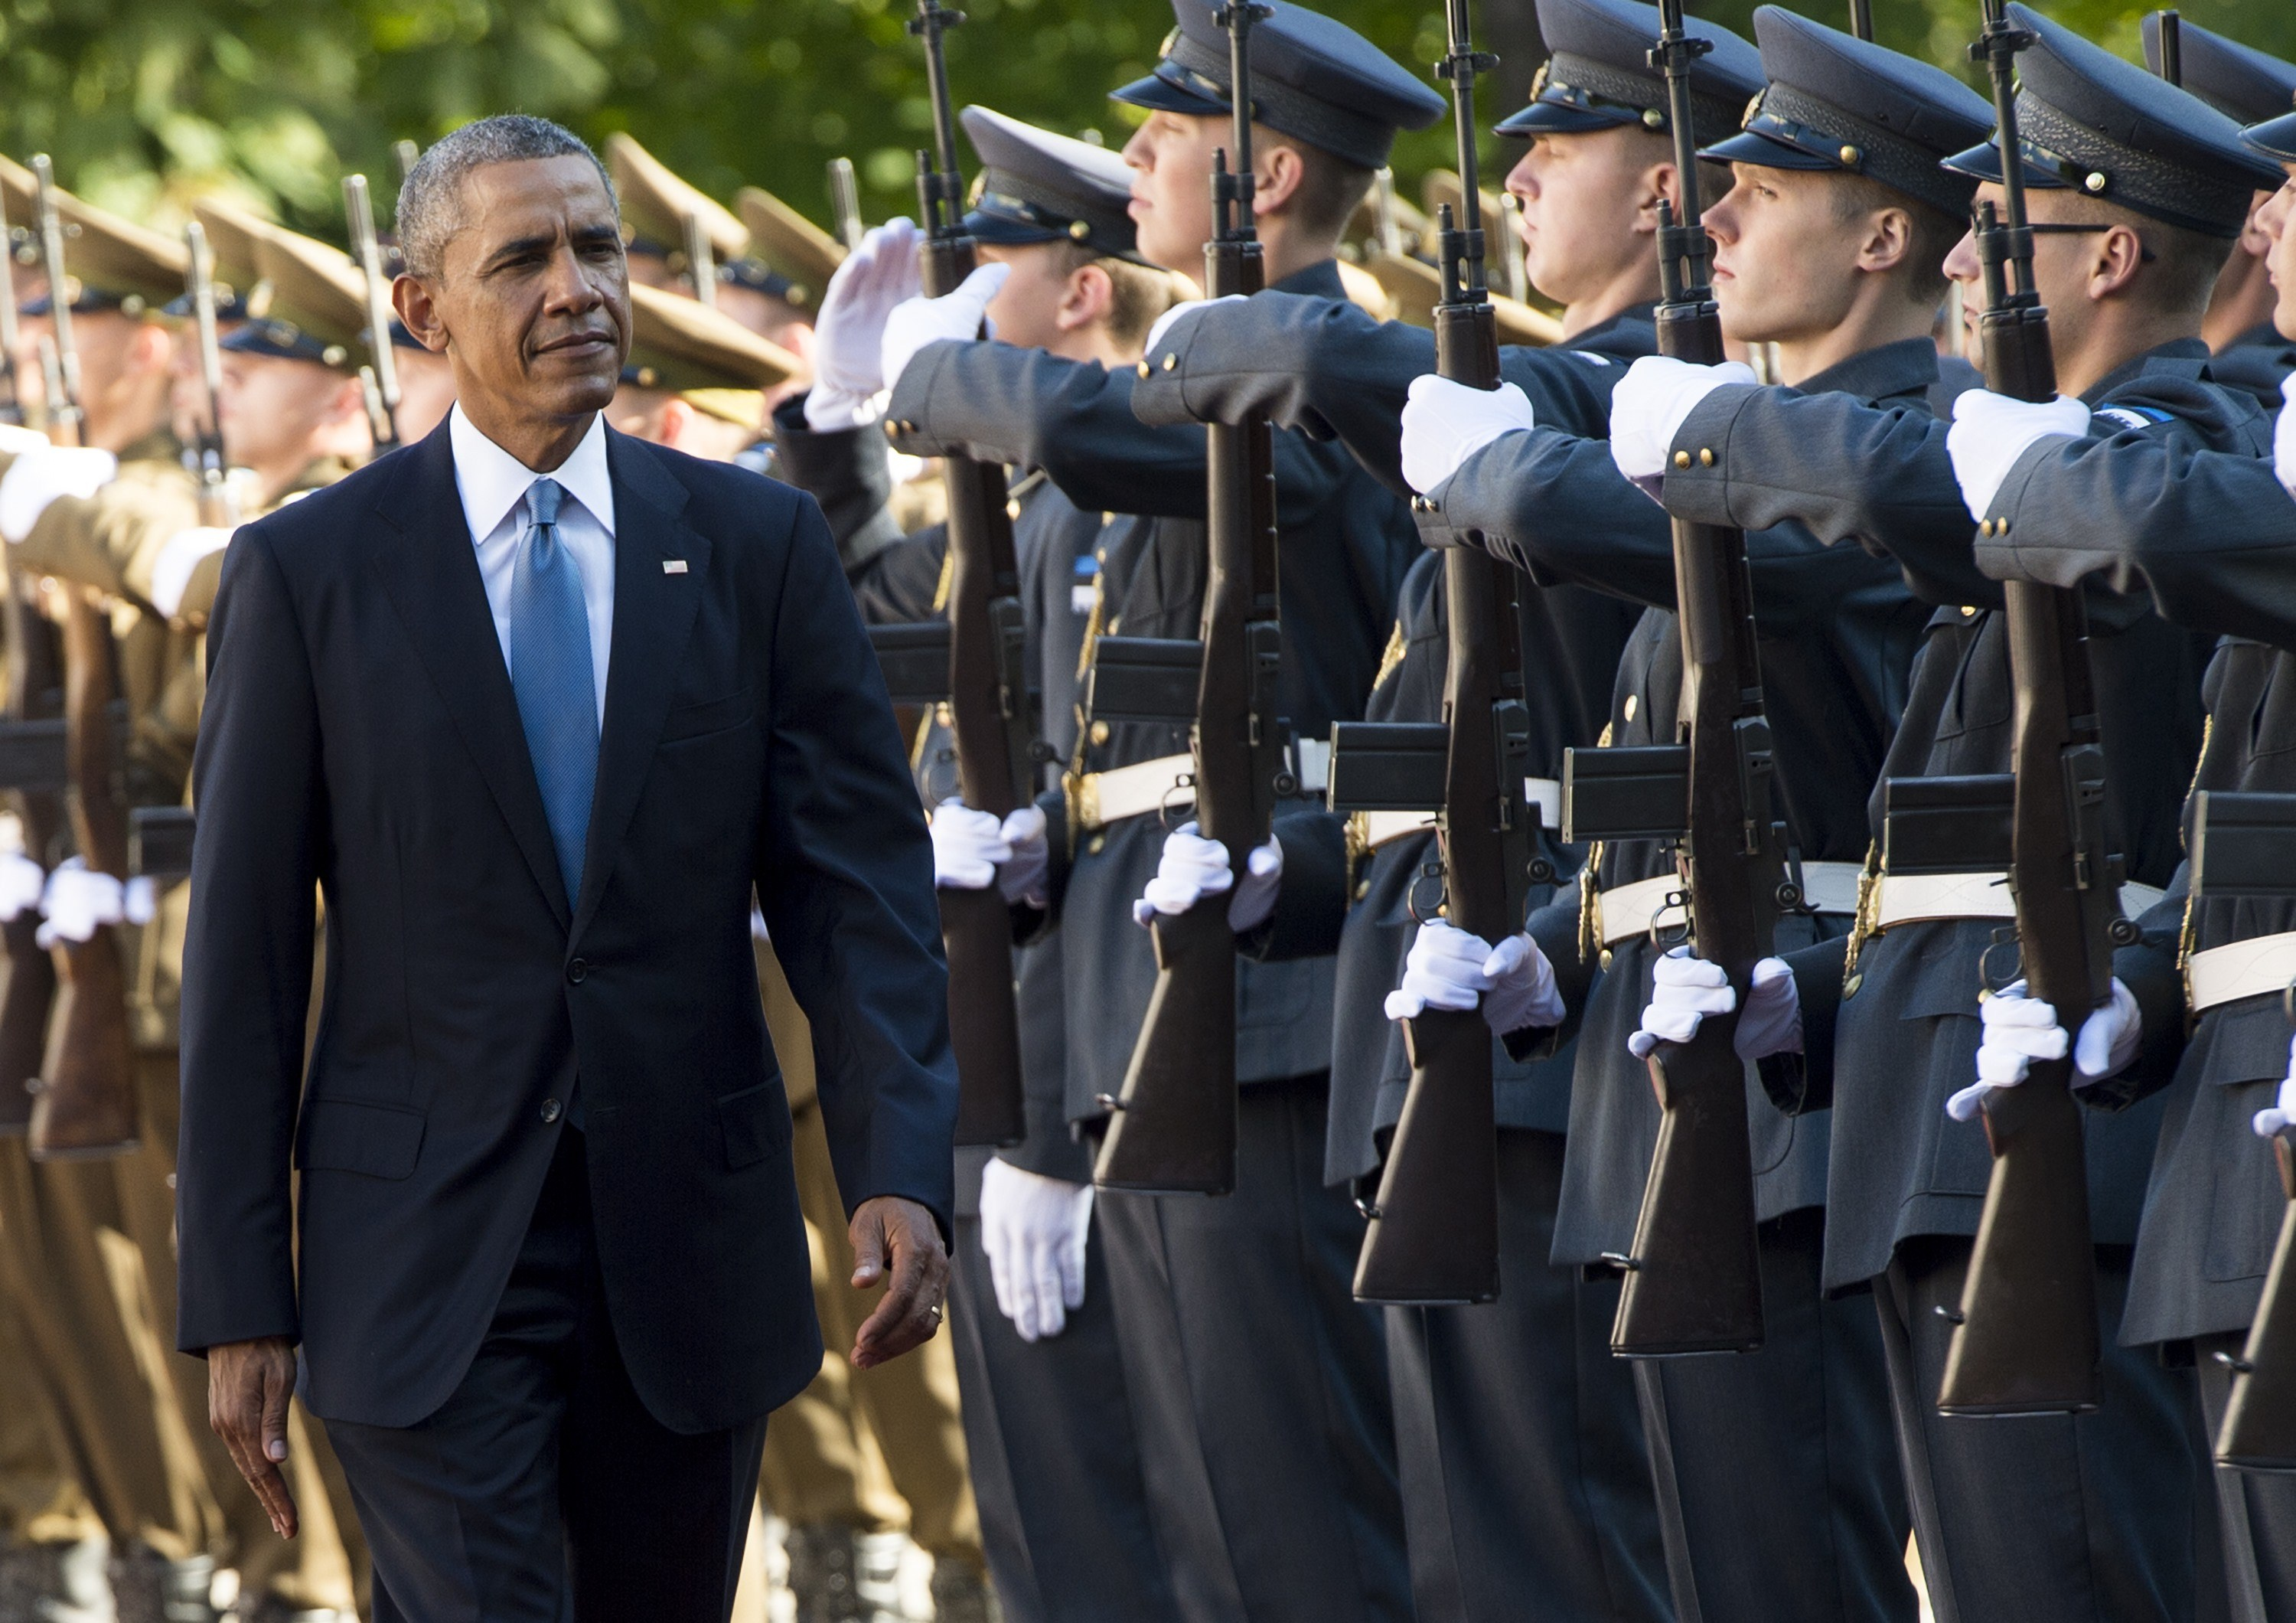 US President Barack Obama and the Estonian President (not in picture) review an honor guard during an arrival ceremony prior to meetings at the Kadriorg Palace in Tallinn, Estonia on Sept. 3, 2014.